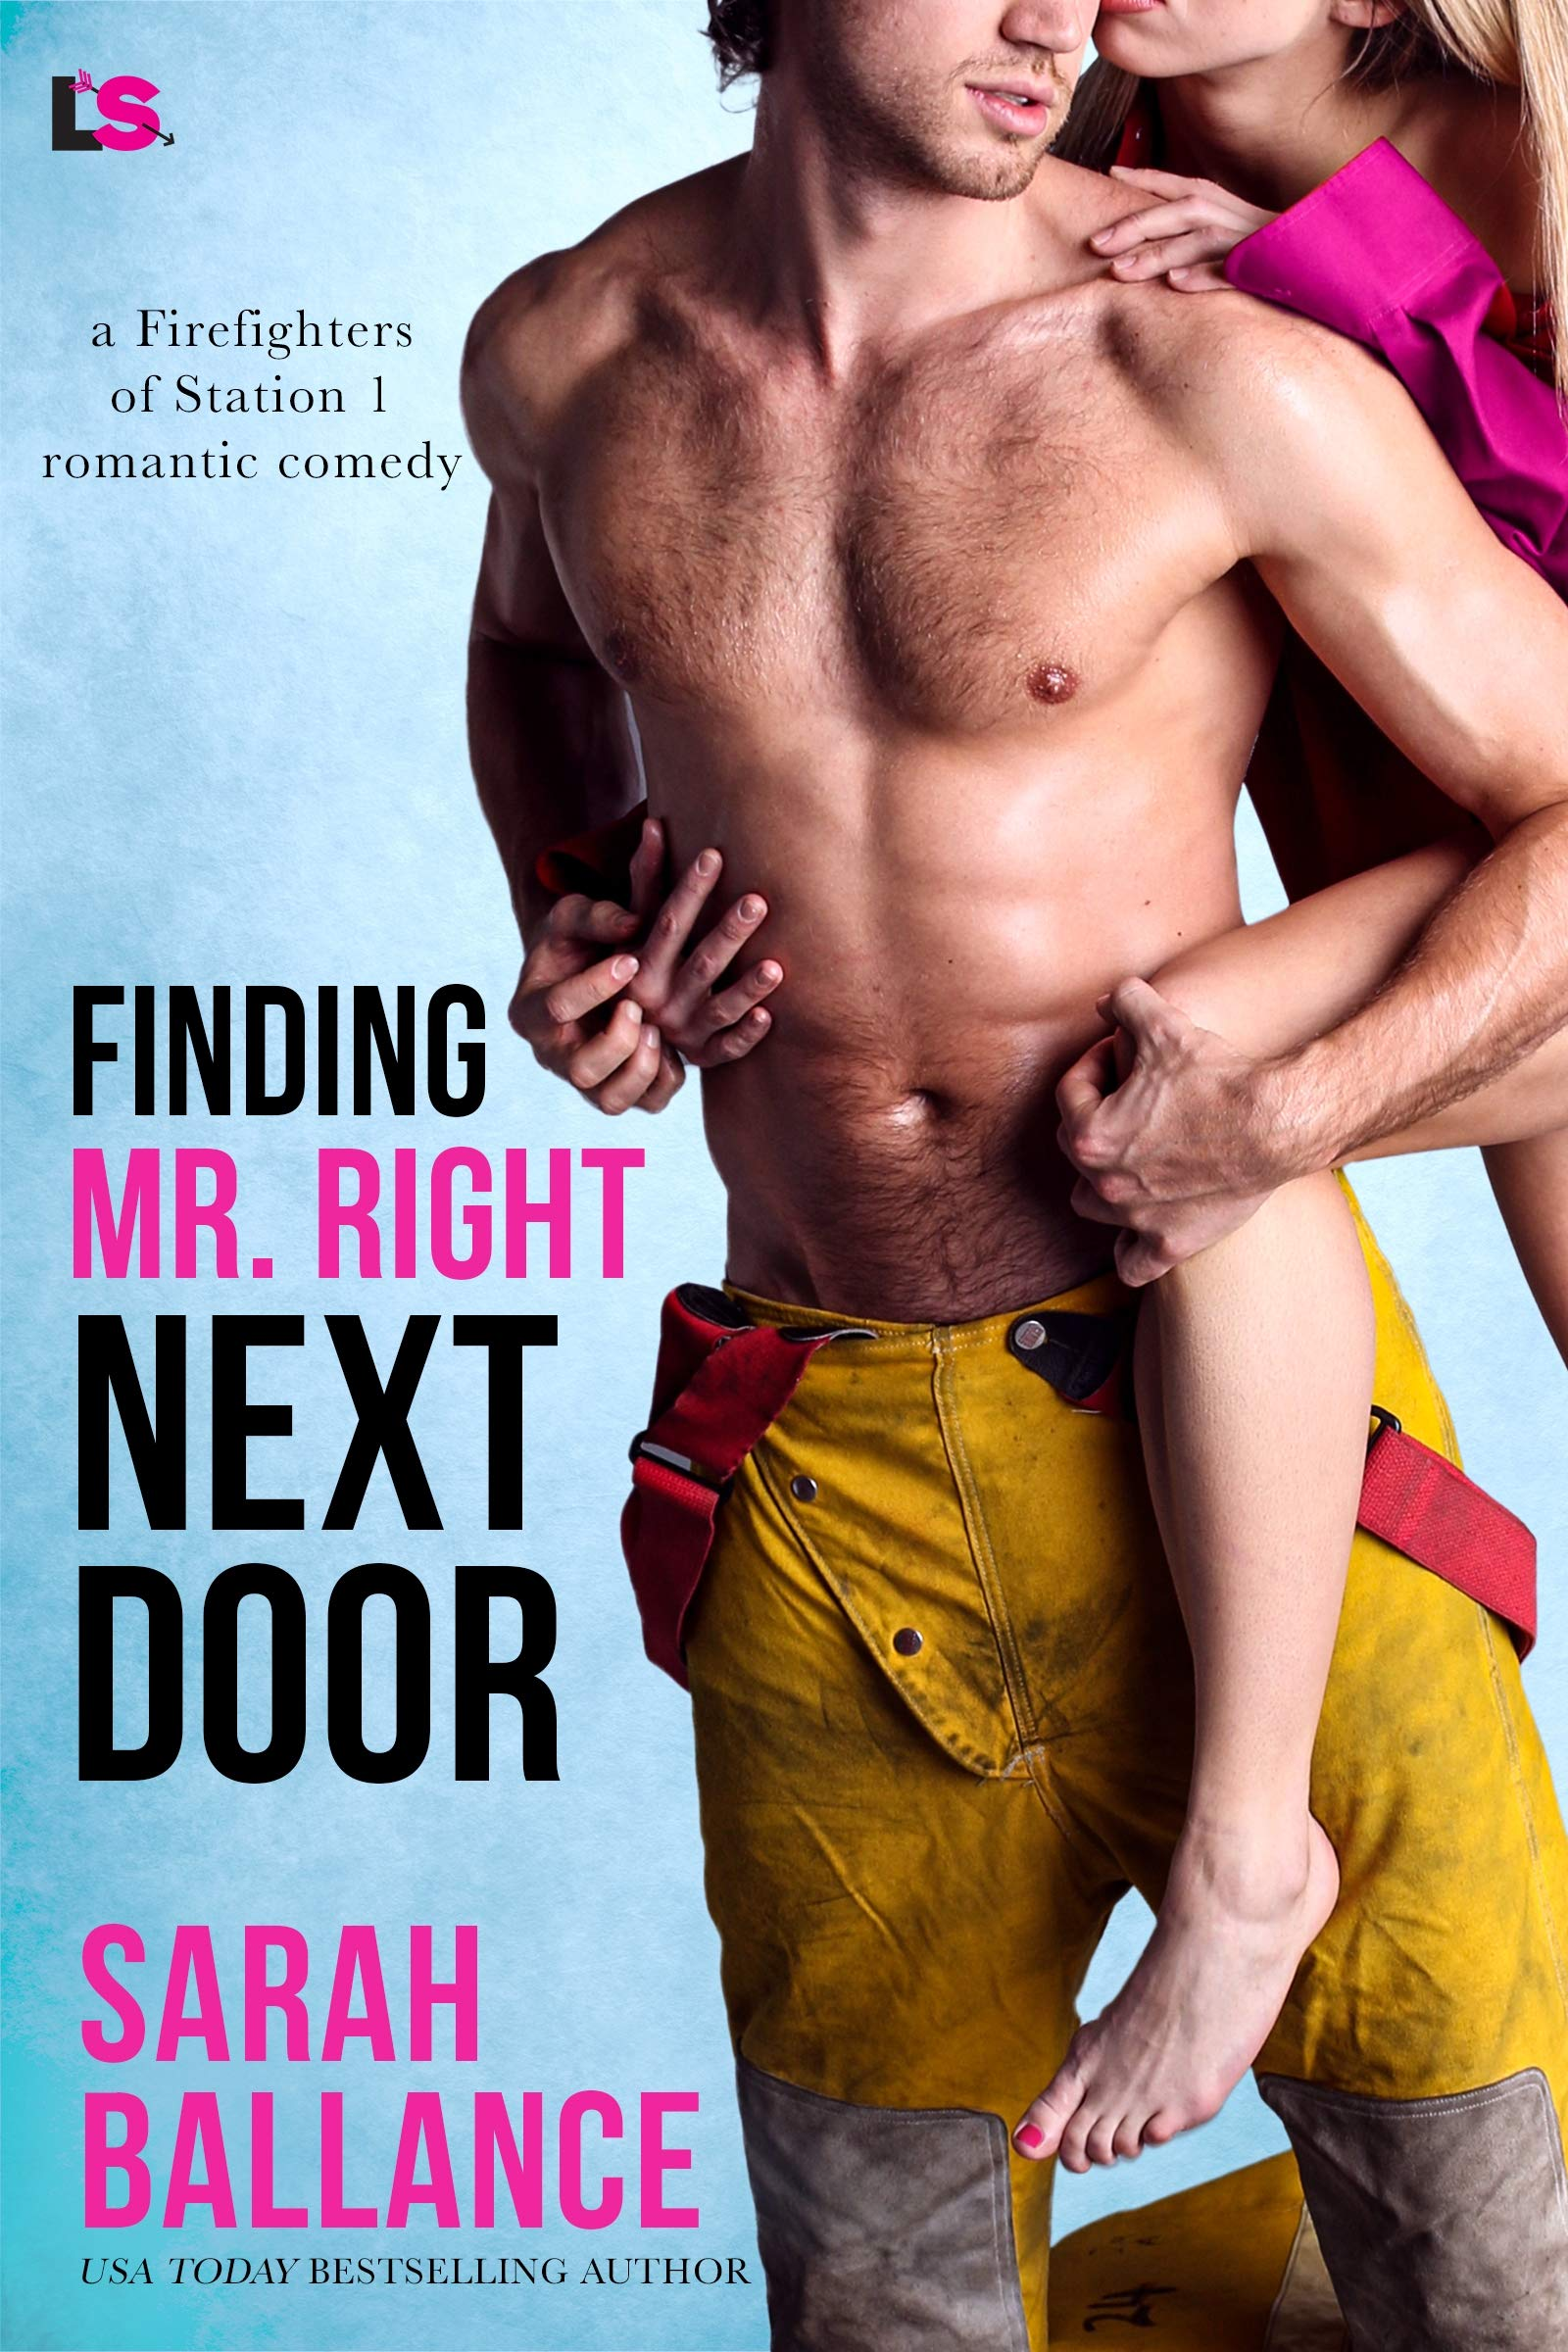 Finding Mr. Right Next Door (Firefighters of Station 1 Book 2)